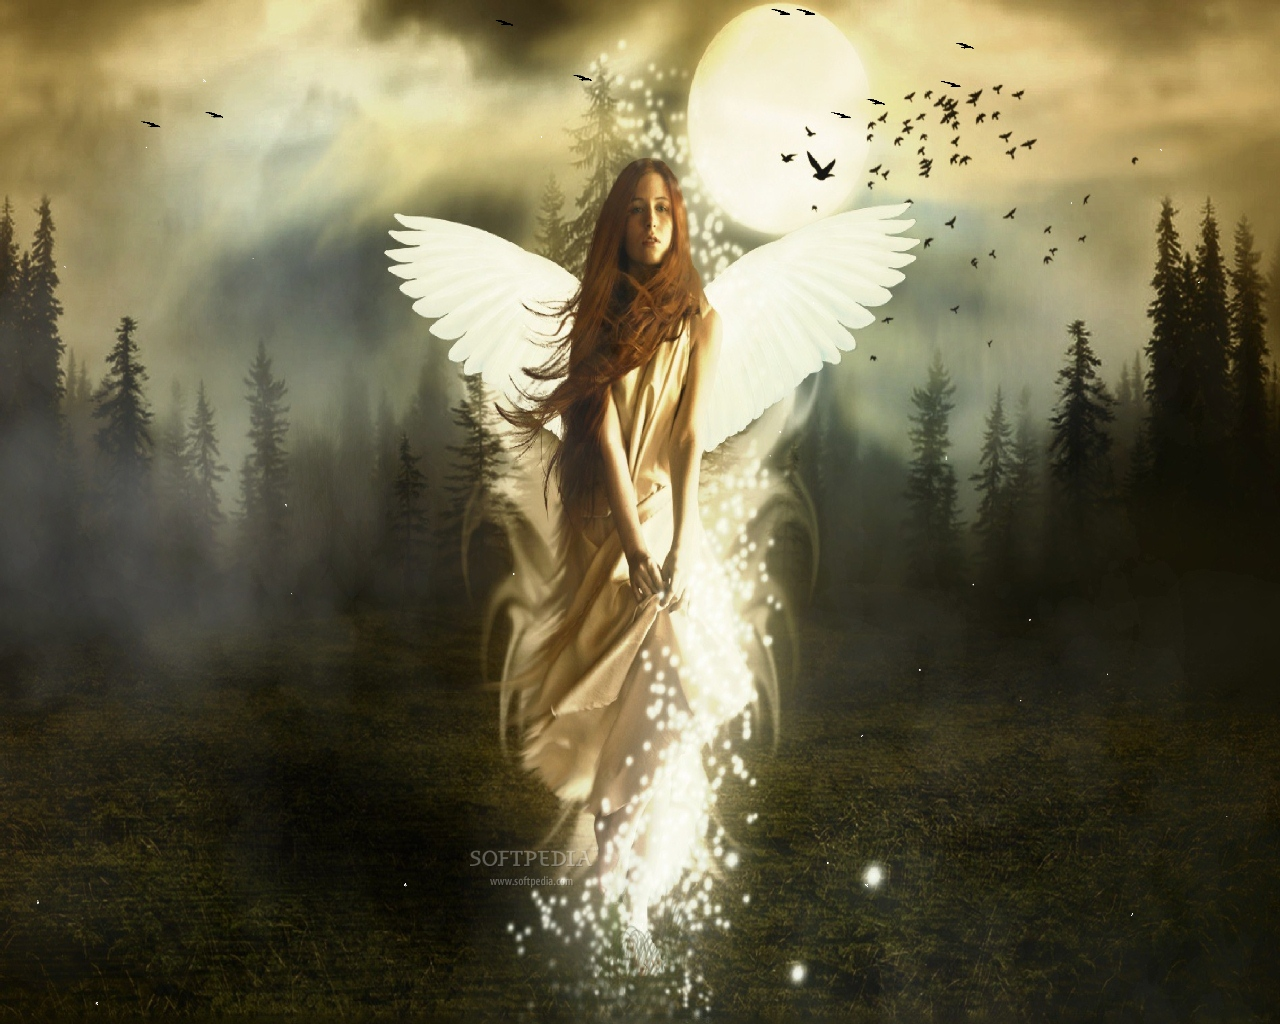 Angel Screensaver   This is a sample from what Beautiful Angel 1280x1024